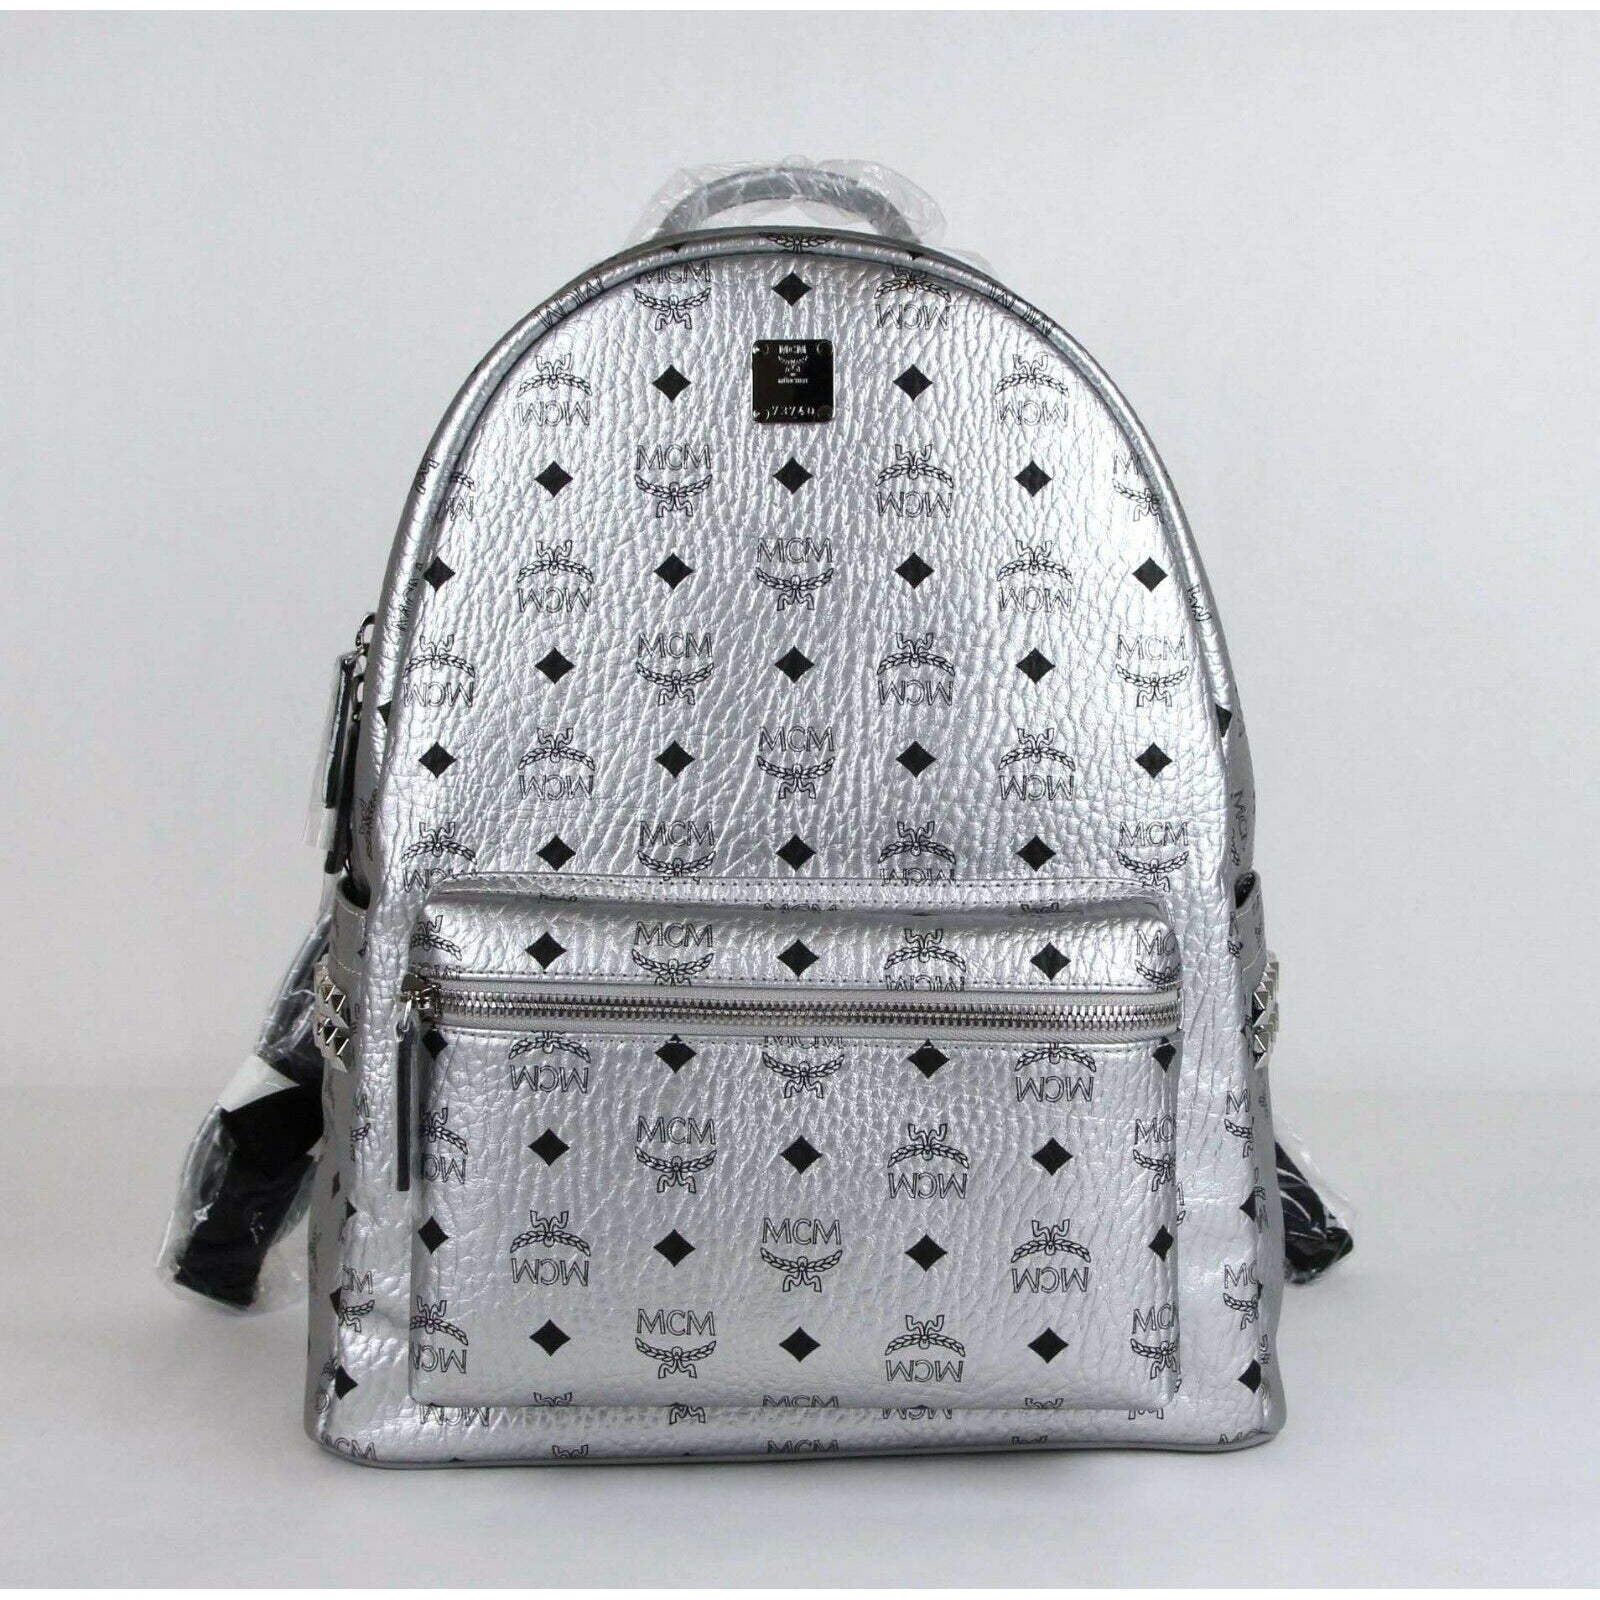 MCM Medium 40 Silver Coated Canvas Studded Backpack